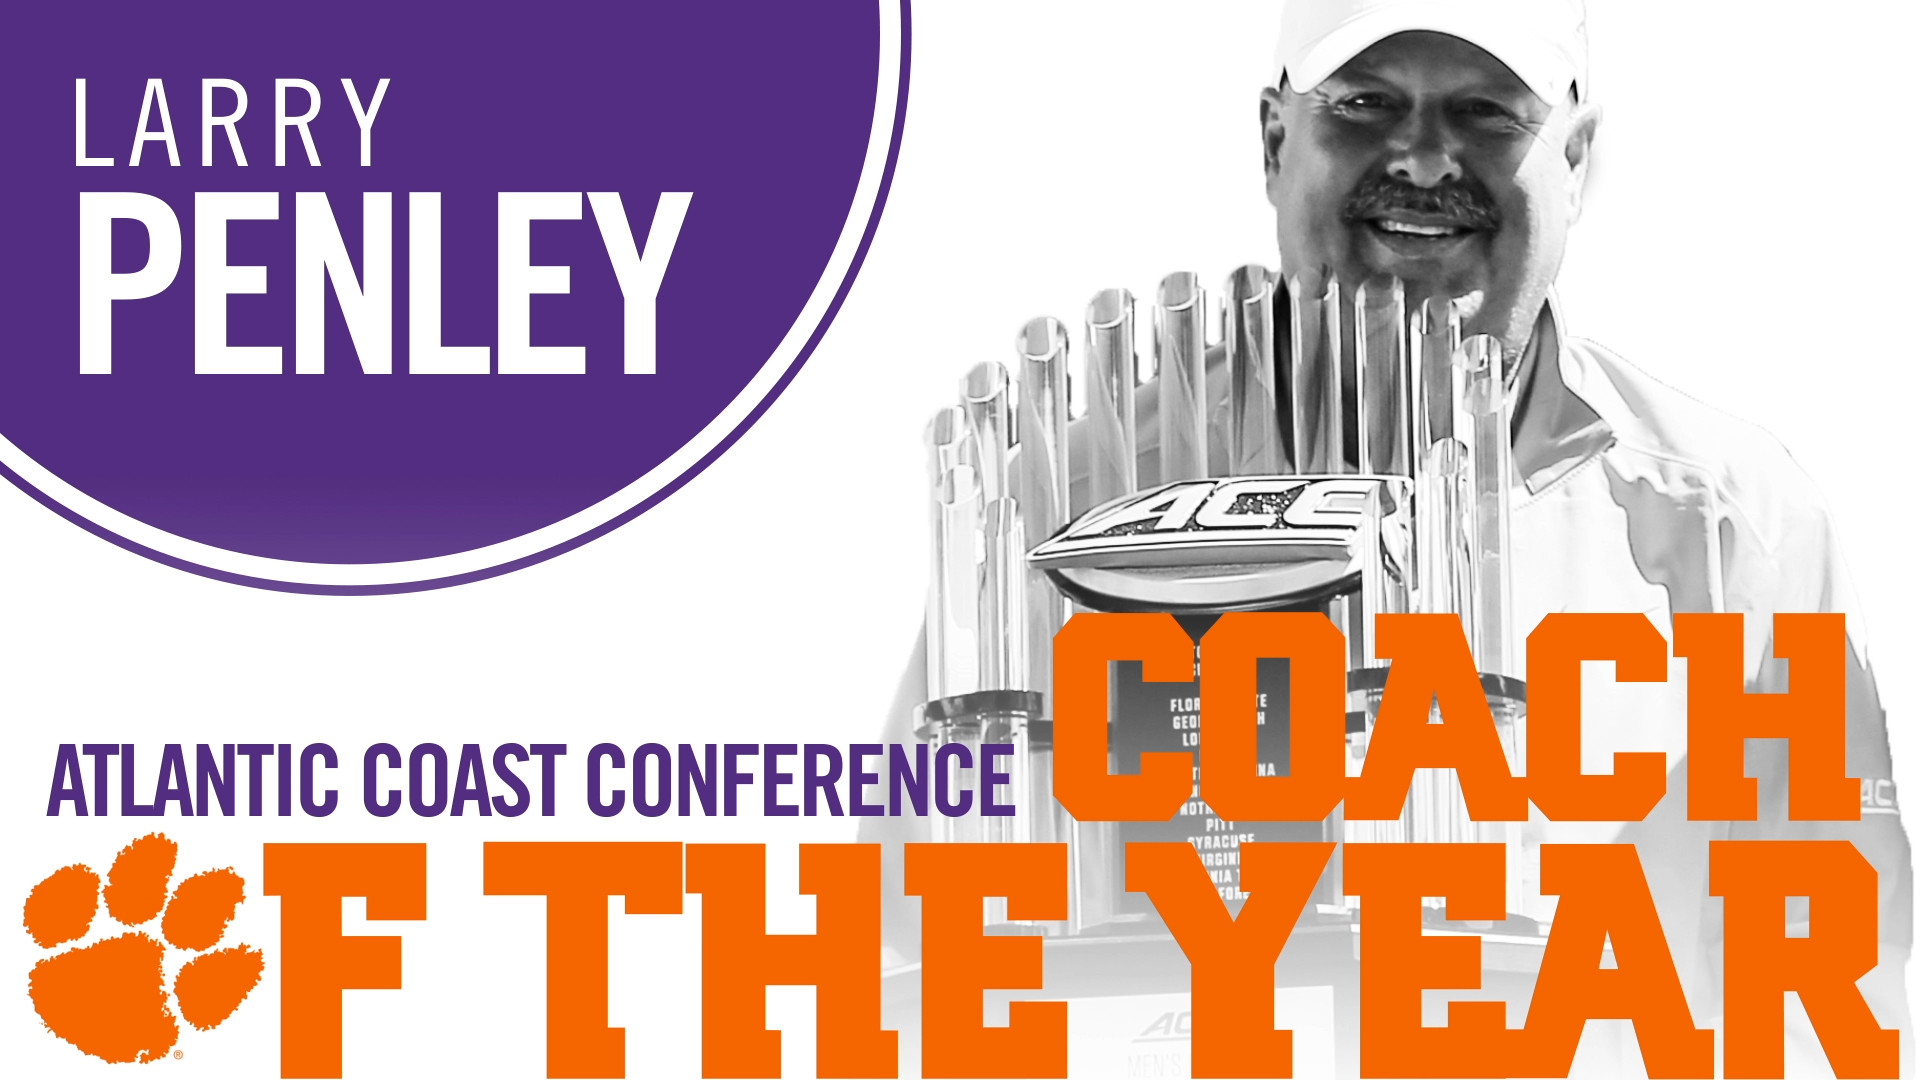 Penley Named ACC Coach of the Year